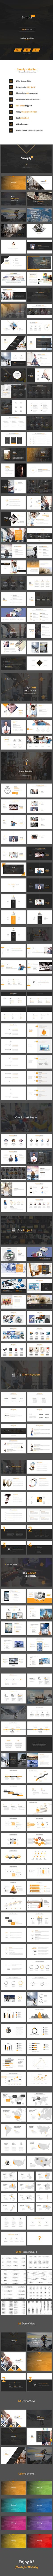 Simply - Ultimate Powerpoint Template